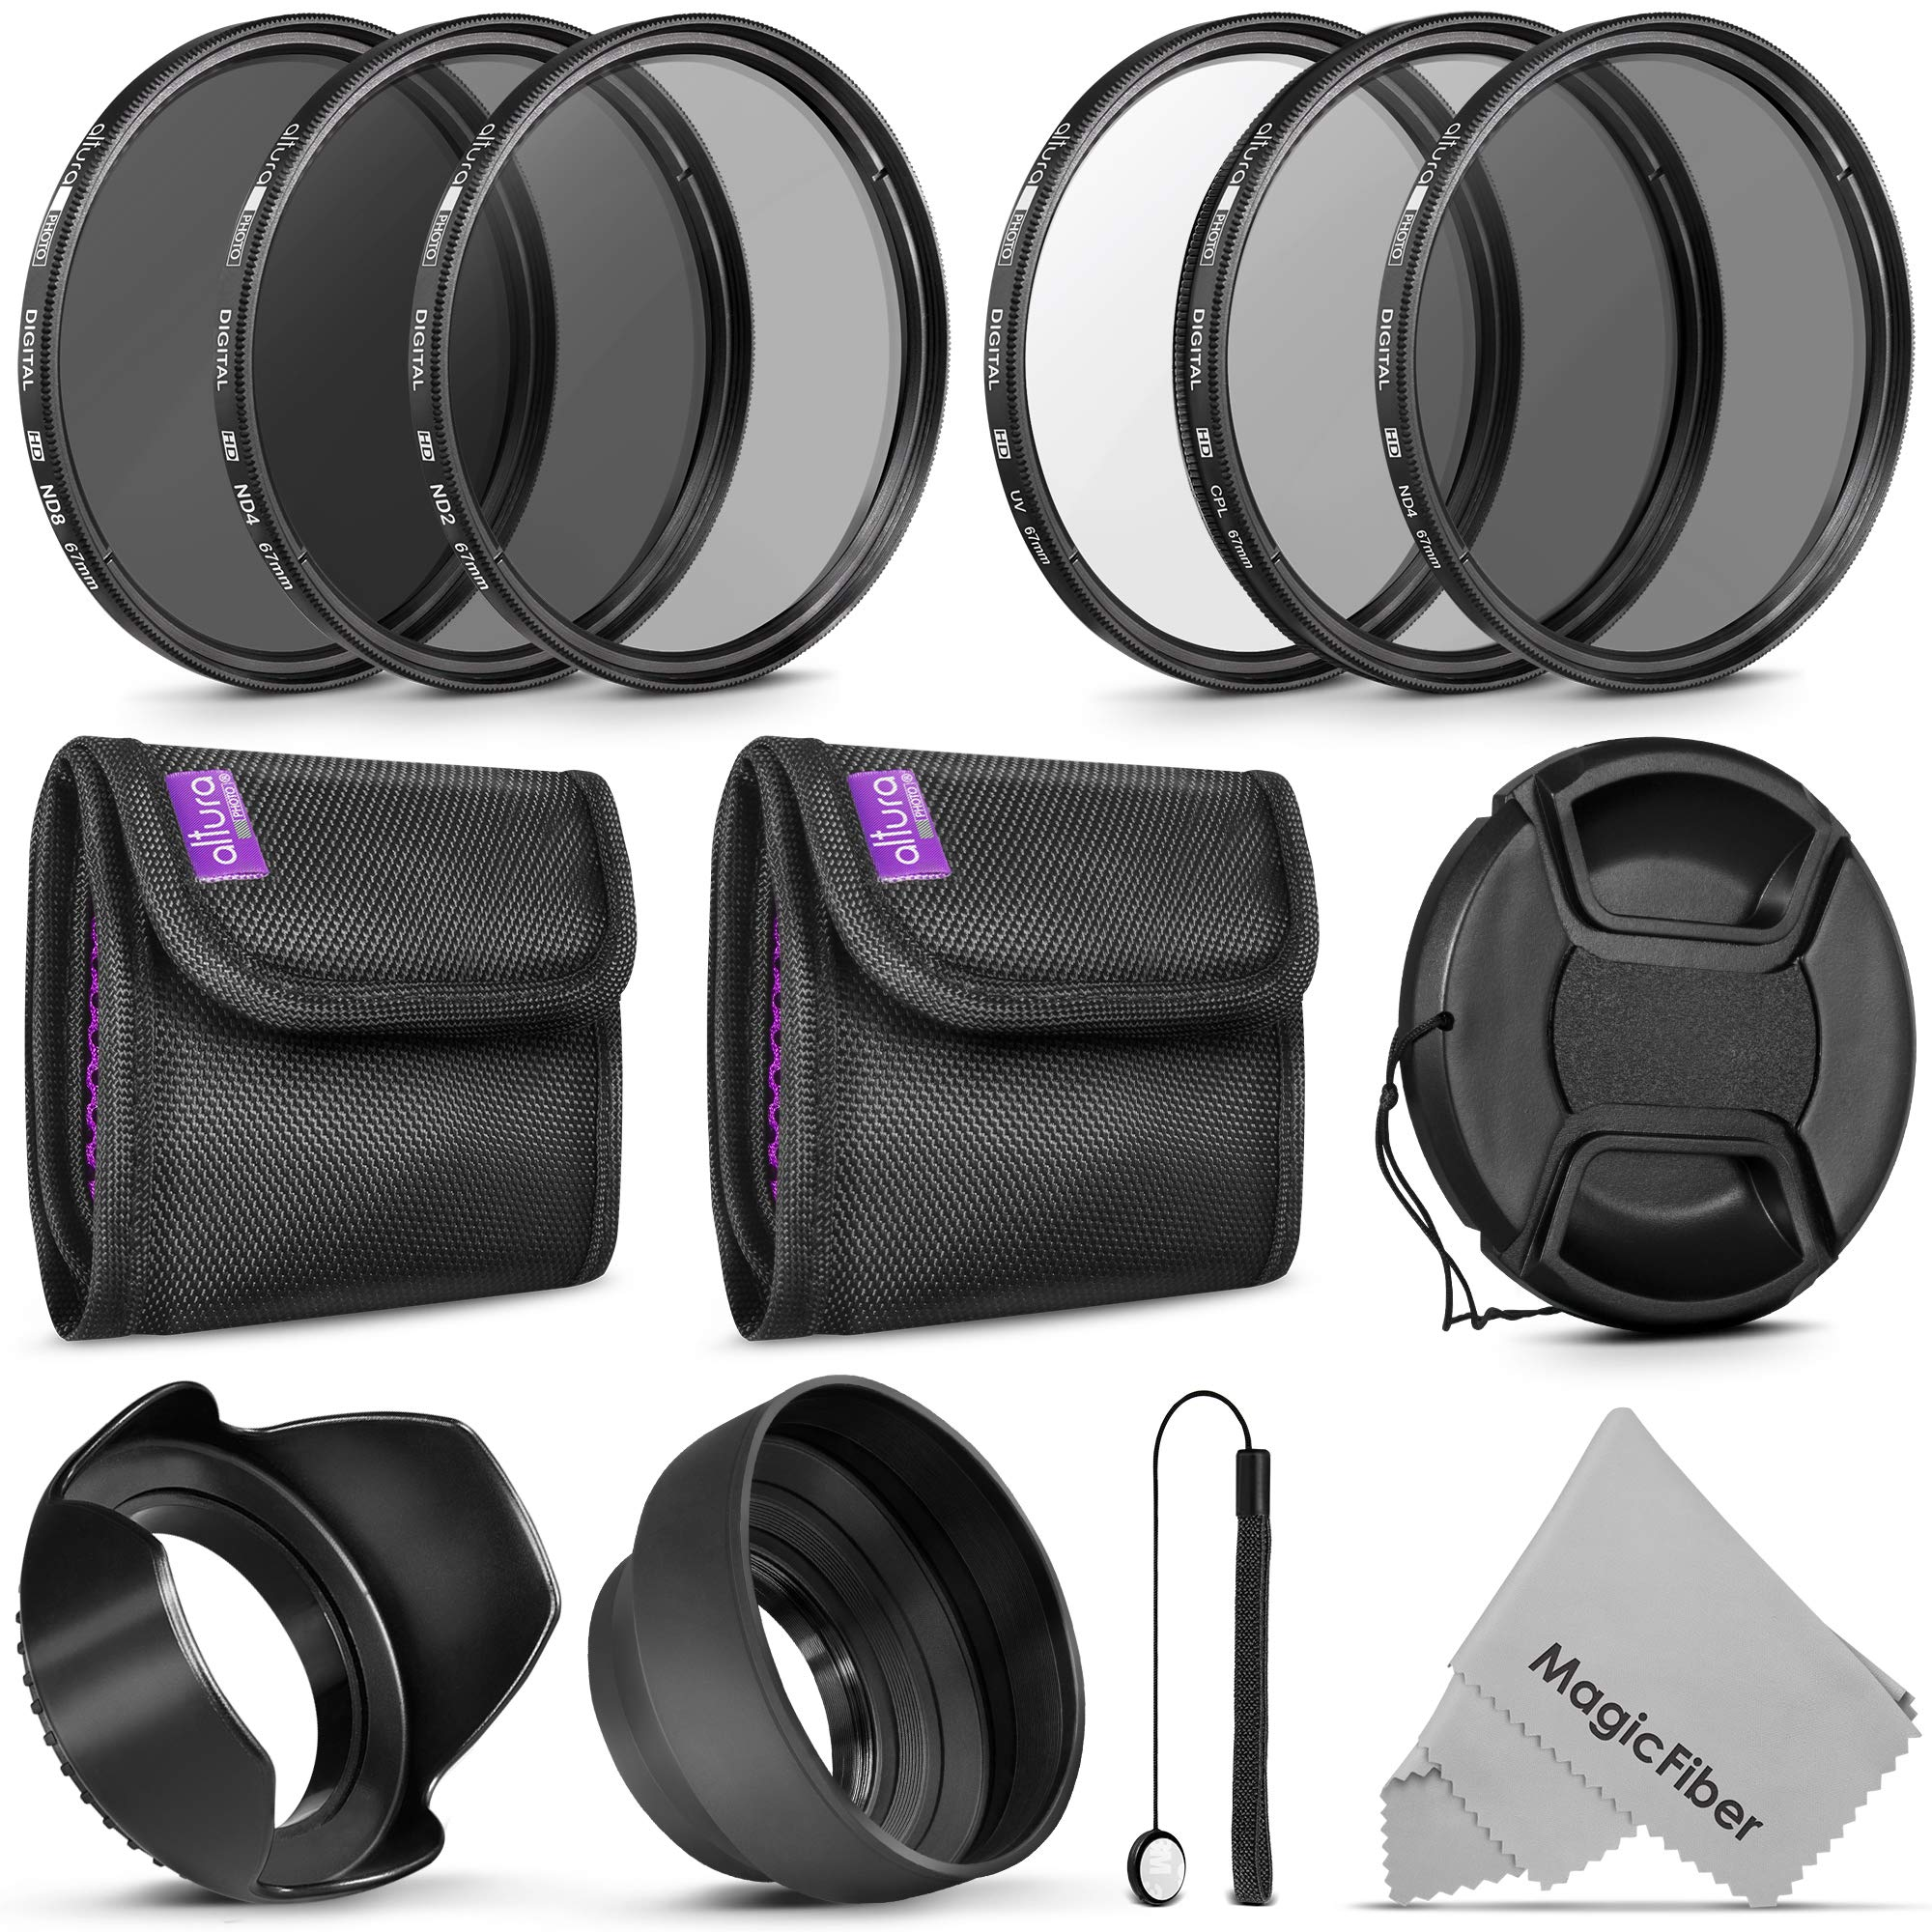 67MM Altura Photo UV CPL ND4 Lens Filters Kit and Altura Photo ND Neutral Density Filter Set. Photography Accessories Bundle for Canon and Nikon Lenses with a 67MM Filter Size by Goja